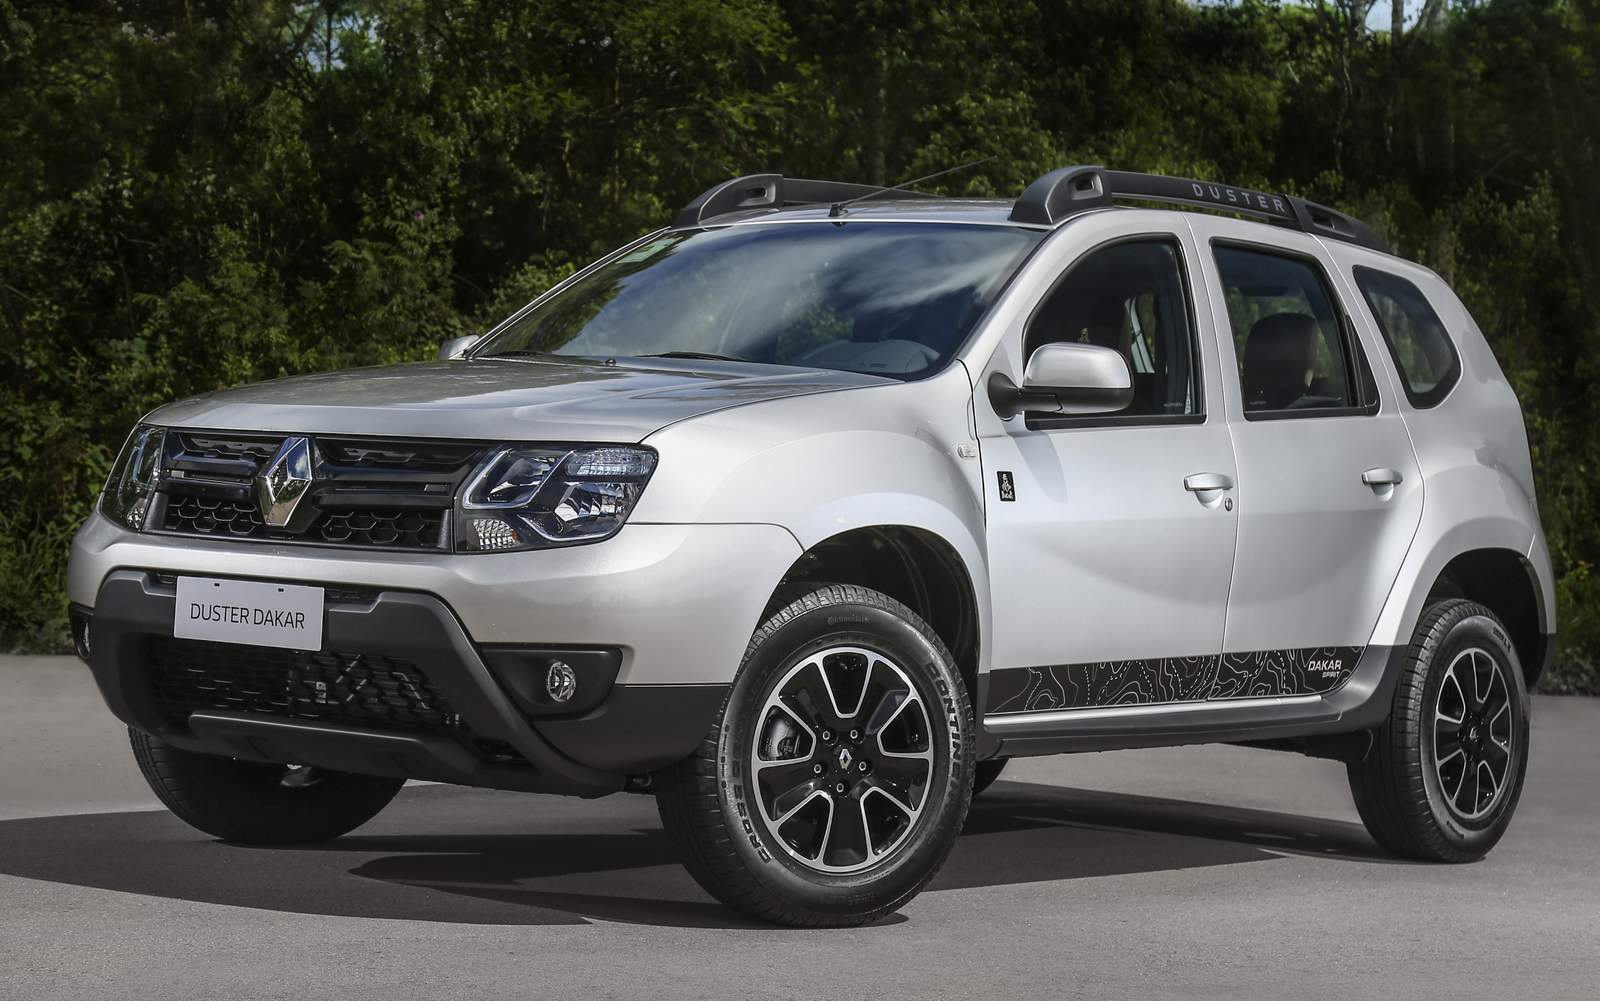 renault duster 2016 dakar pre o parte de r reais car blog br. Black Bedroom Furniture Sets. Home Design Ideas